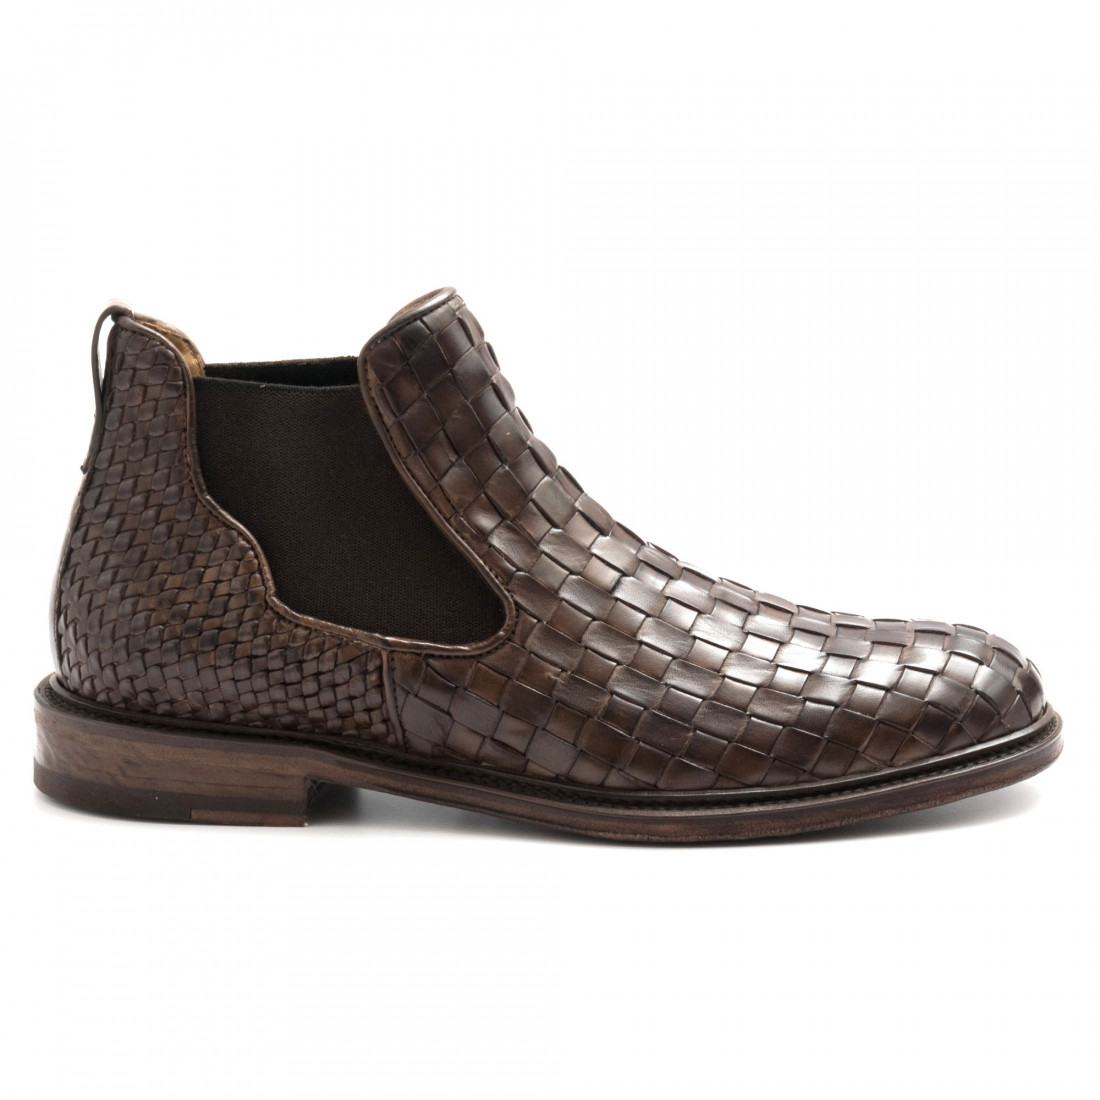 booties man brecos 874714956 vit taupe 4615